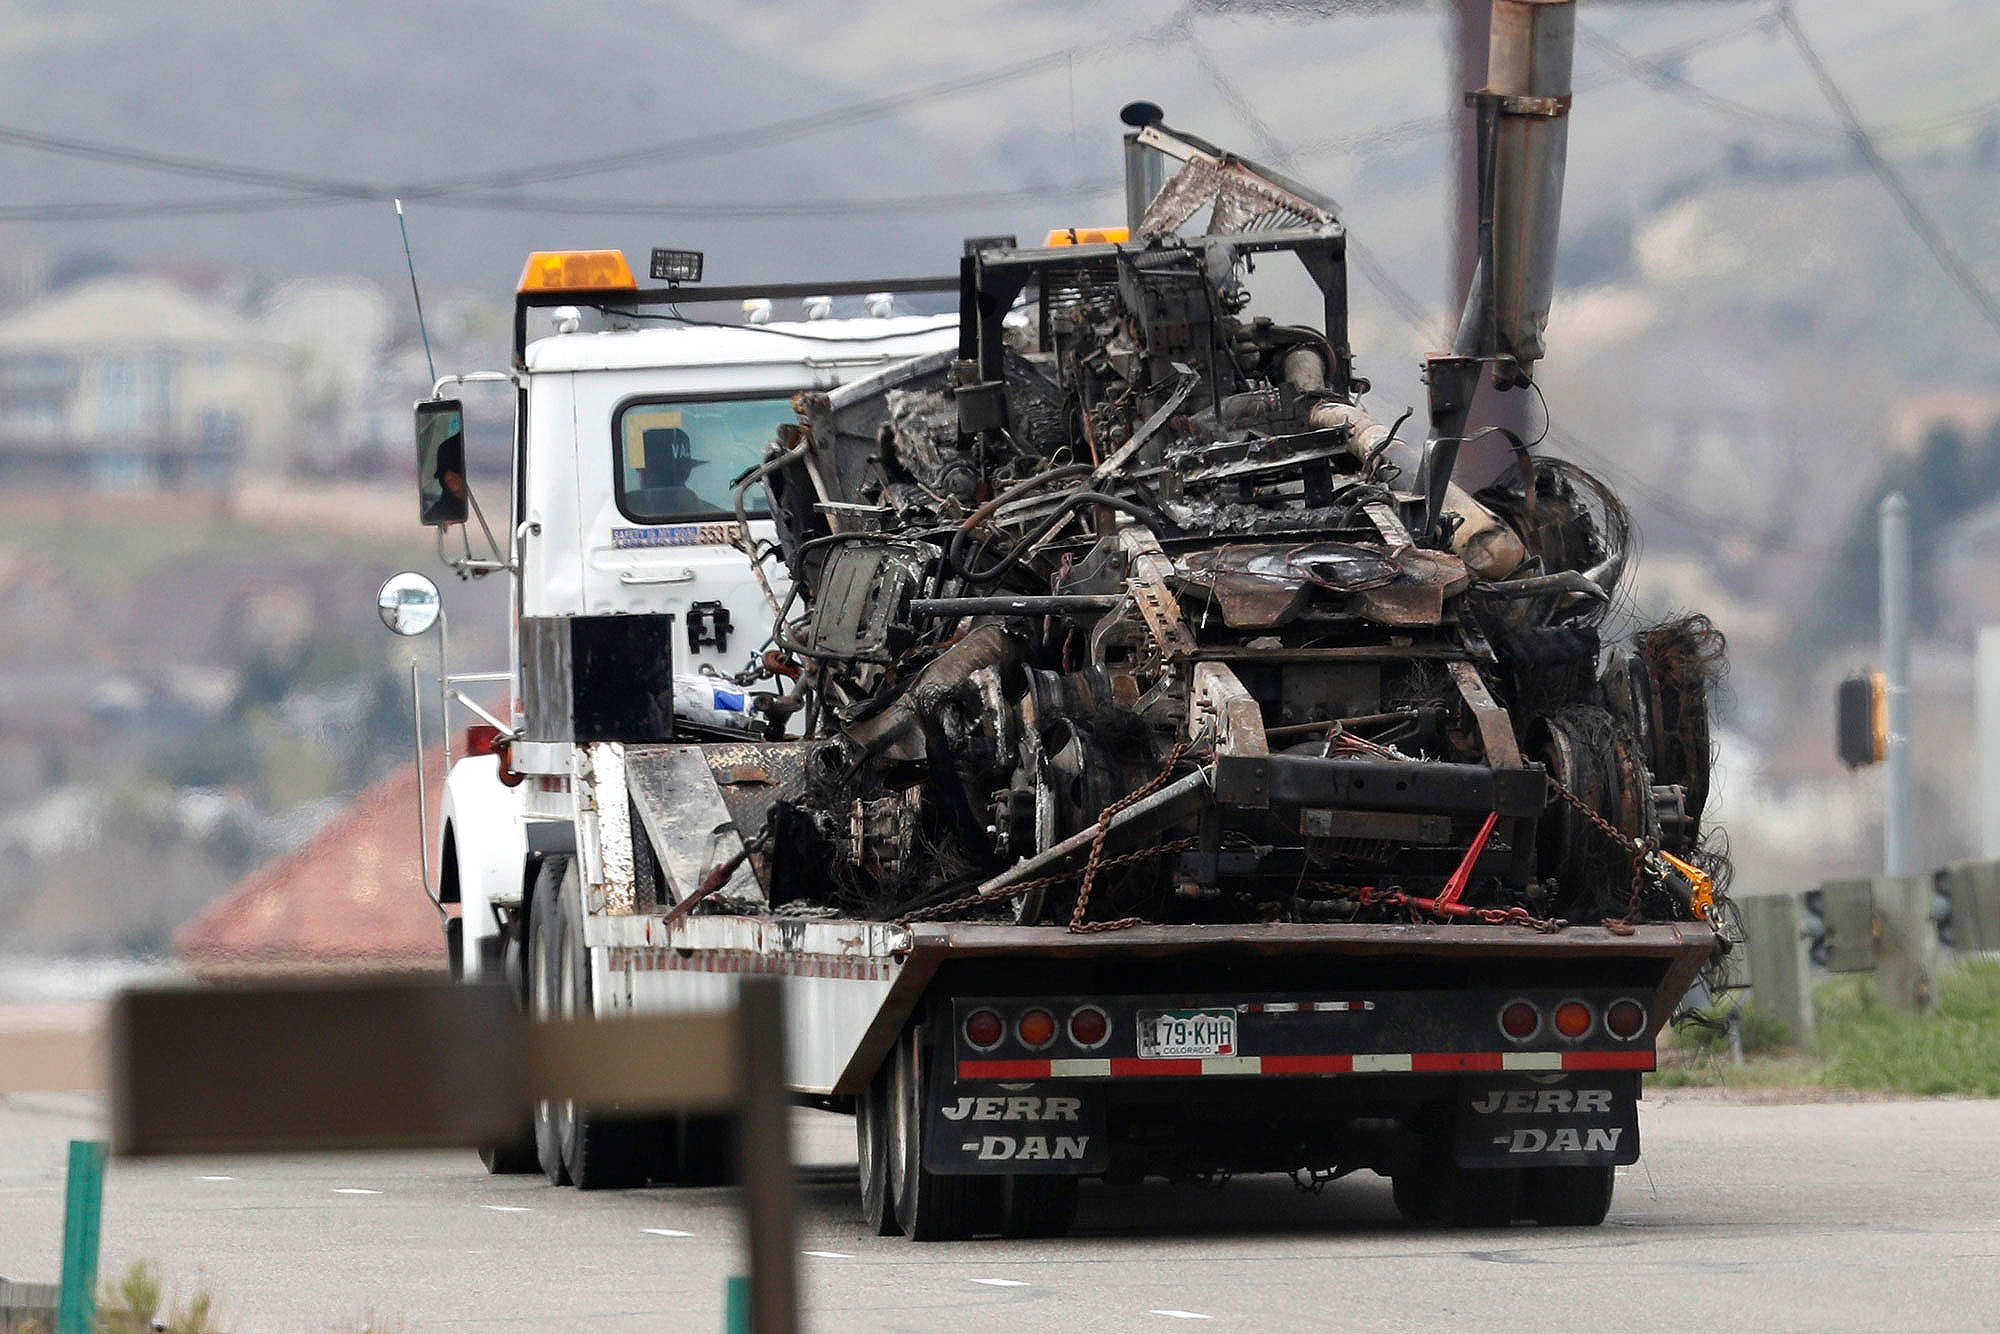 Photo: I-70 Truck Wreck Aftermath 2 AP 20190429